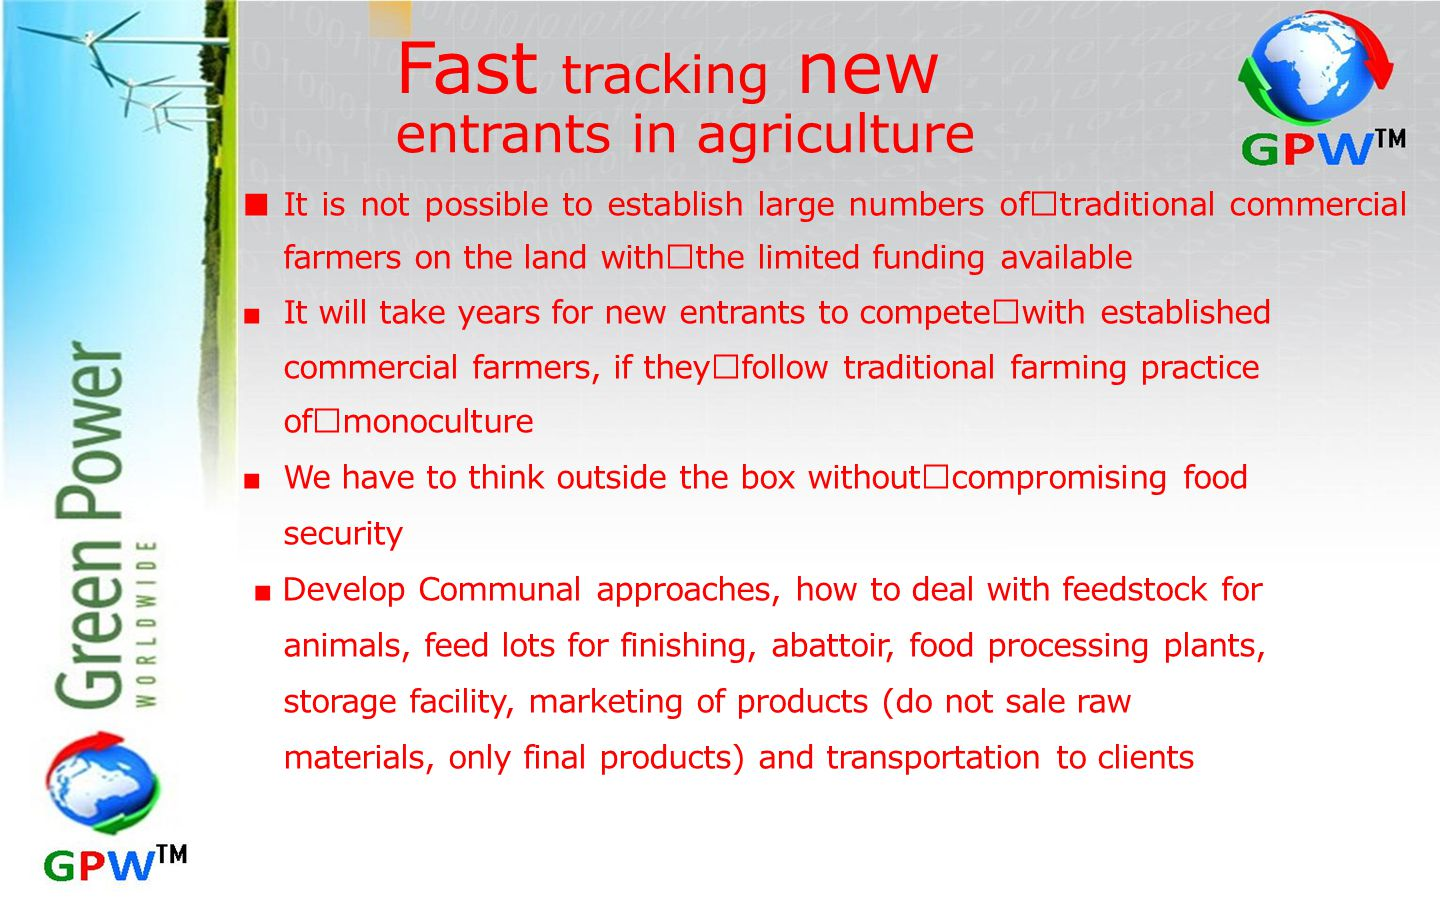 Fast tracking new entrants in agriculture